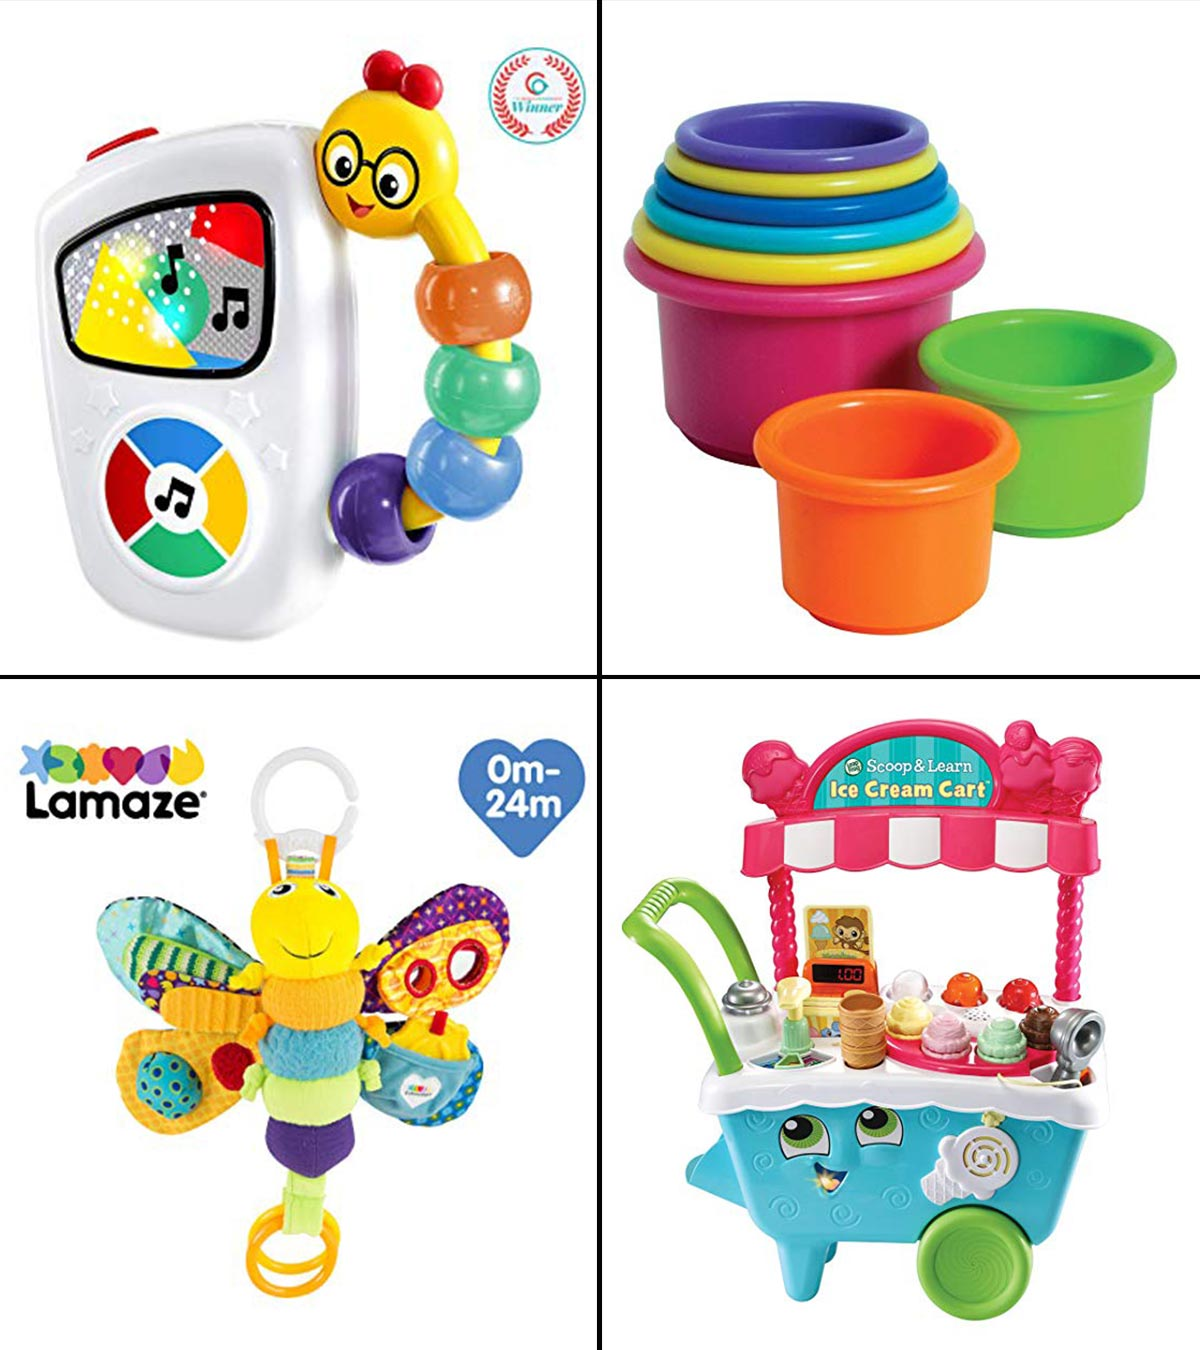 31 Best Gifts For 2 Year Olds In 2020